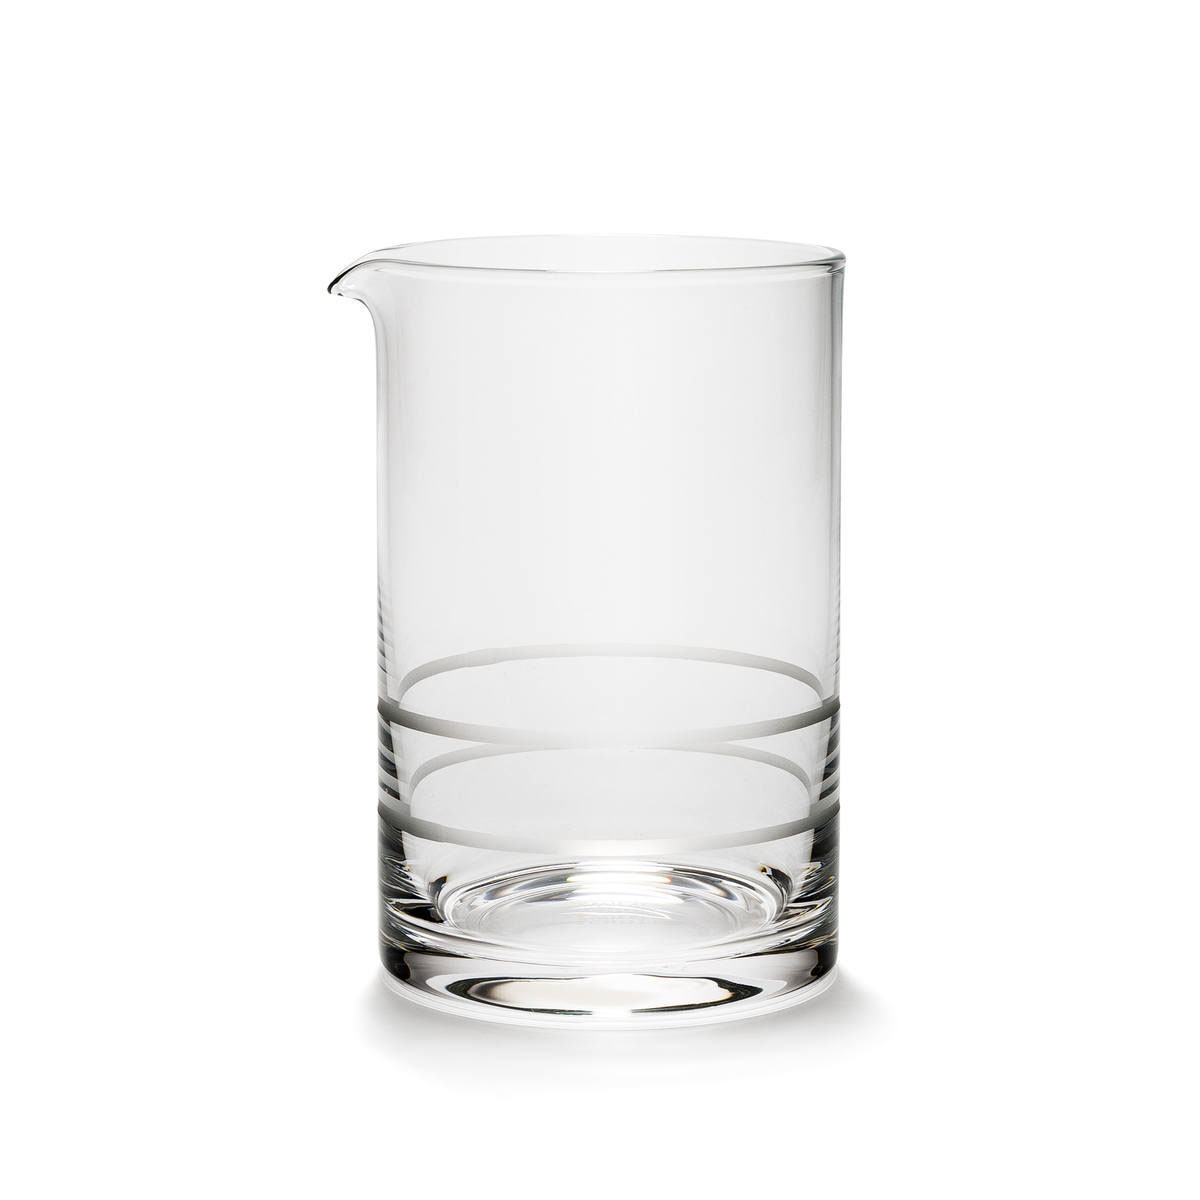 Schott Zwiesel Tritan Crystal, Crafthouse Mixing Glass, Single